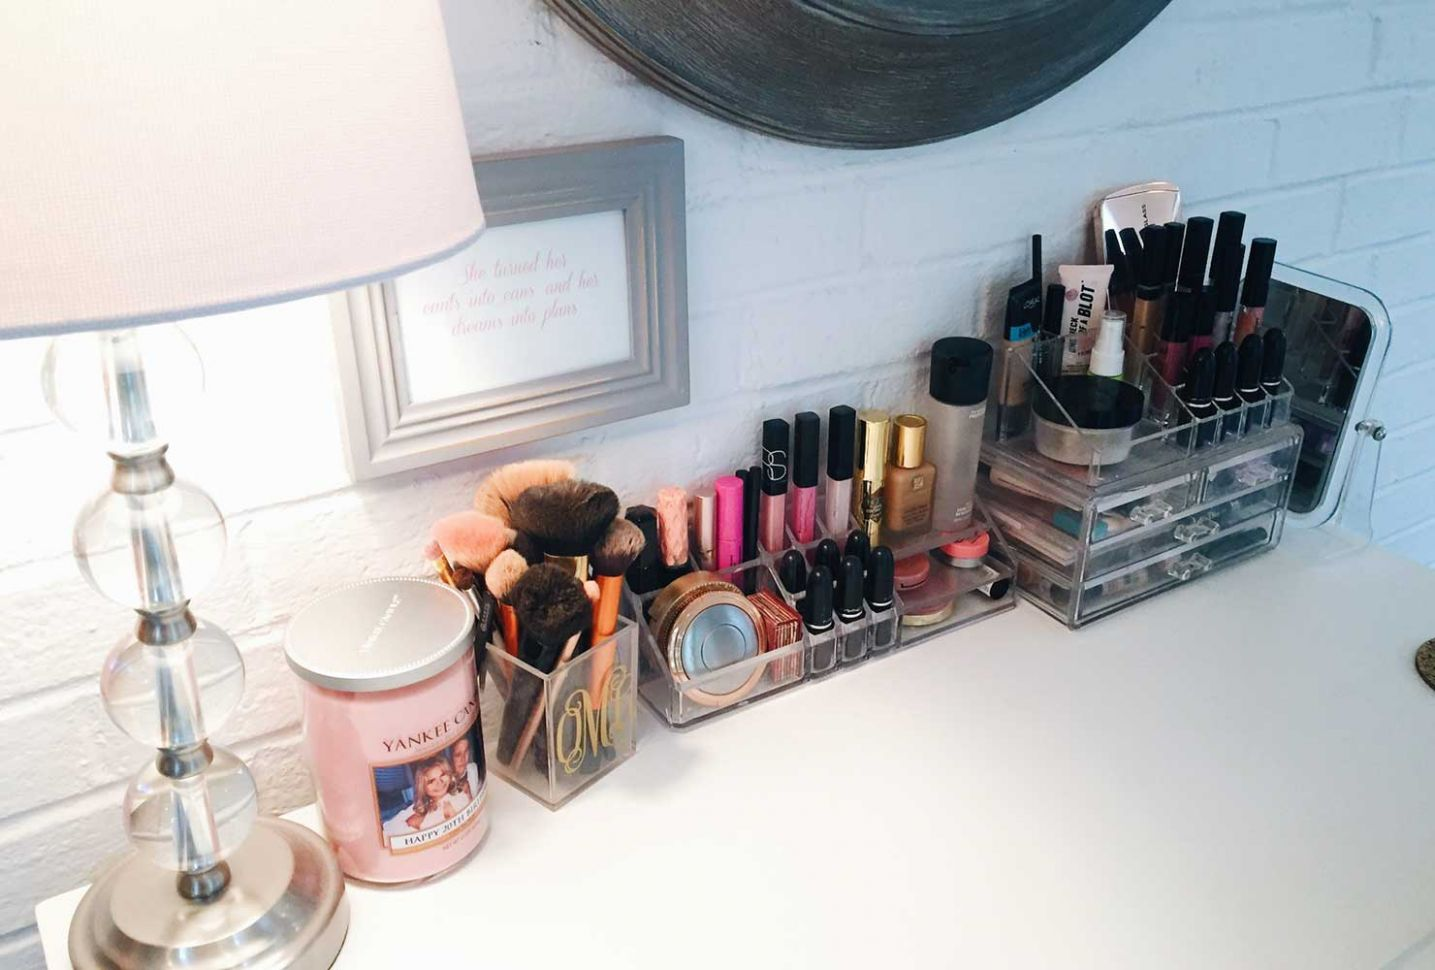 12 Makeup Room Ideas To Brighten Your Morning Routine | Shutterfly - makeup room organization